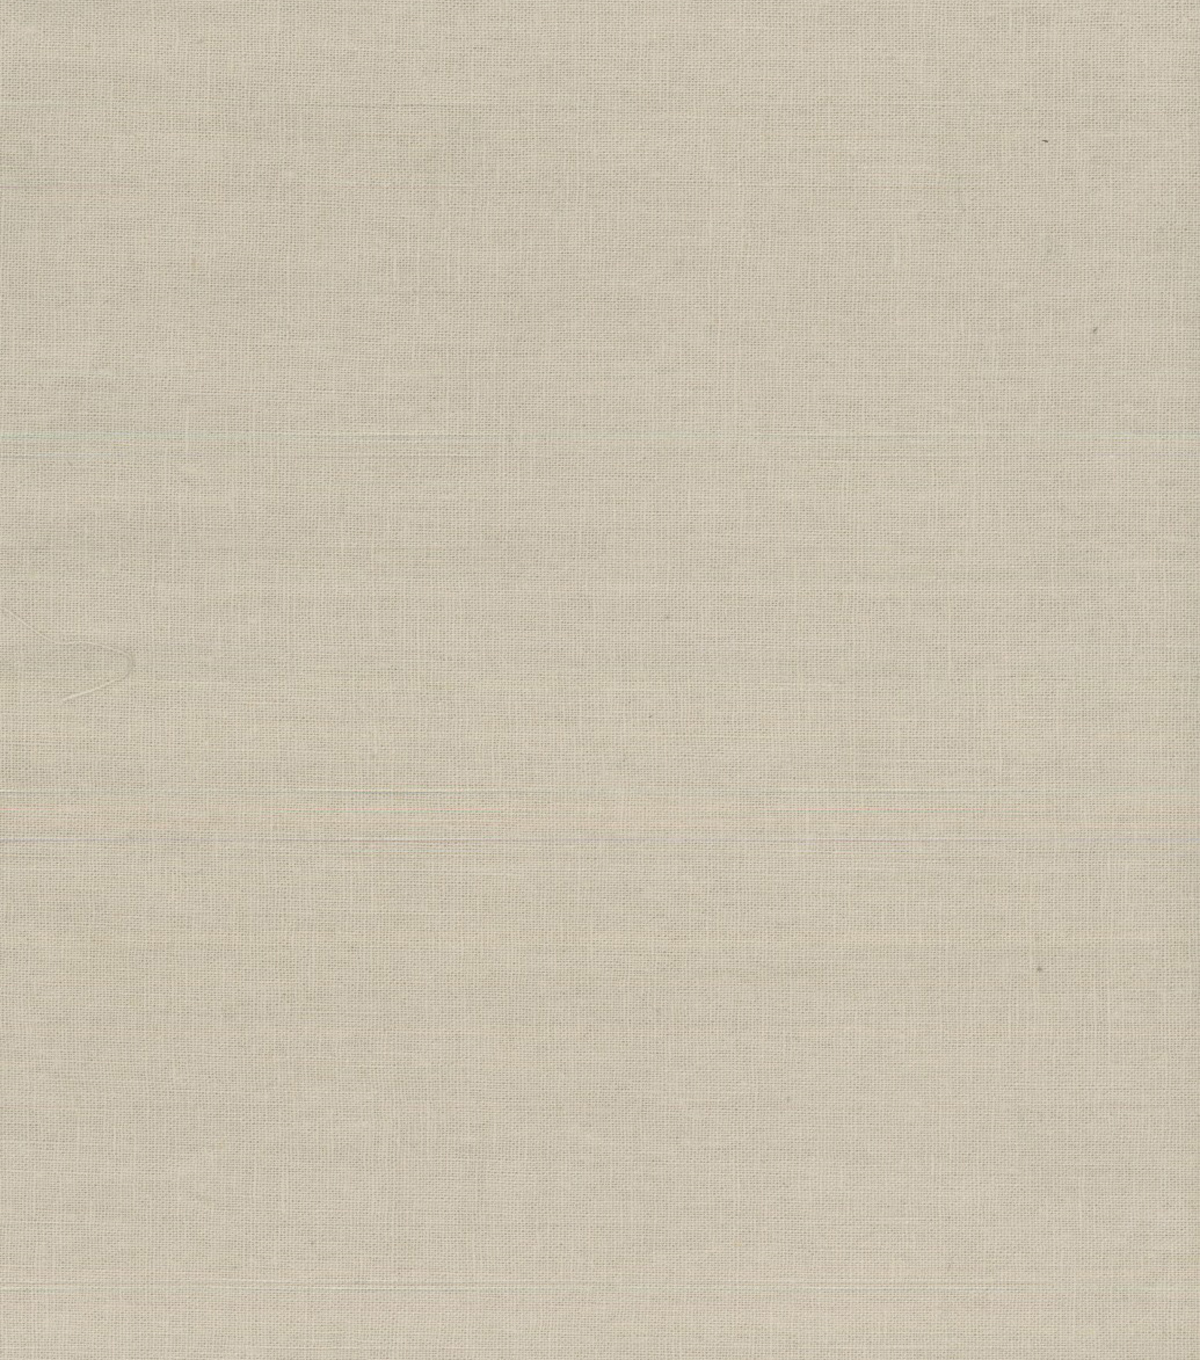 Sew Classics Linen Look Fabric -Solid, Ivory